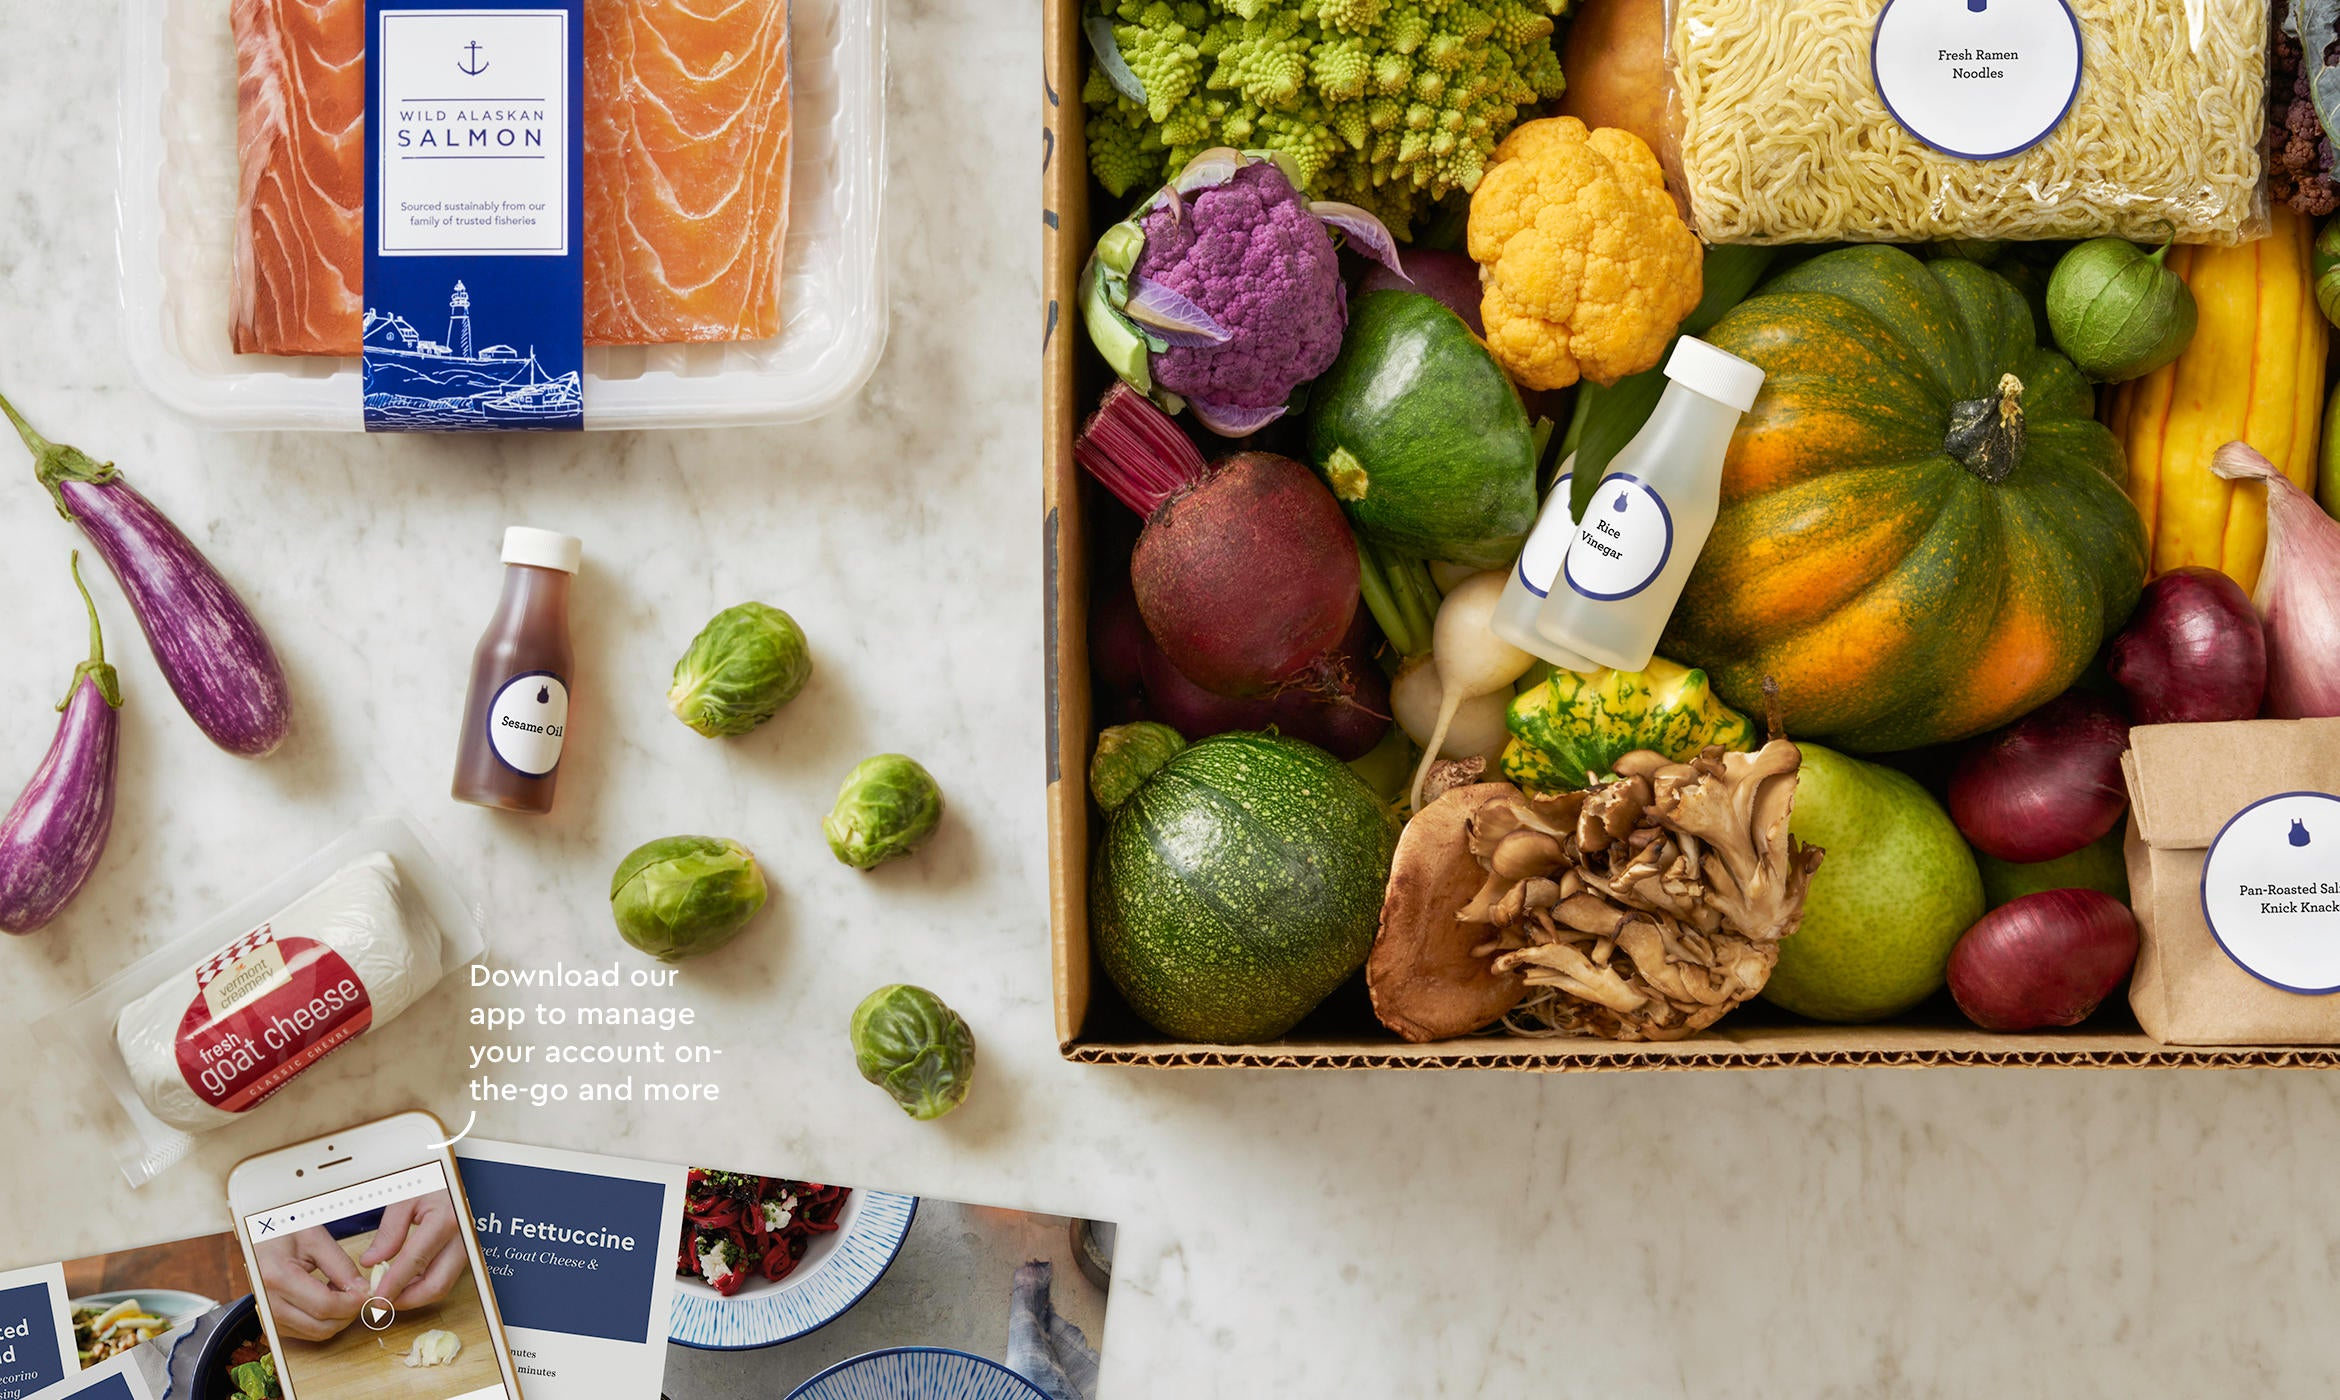 https___media.blueapron.com_home_page_WhatsInTheDelivery_011317_WhatsInside_desktop